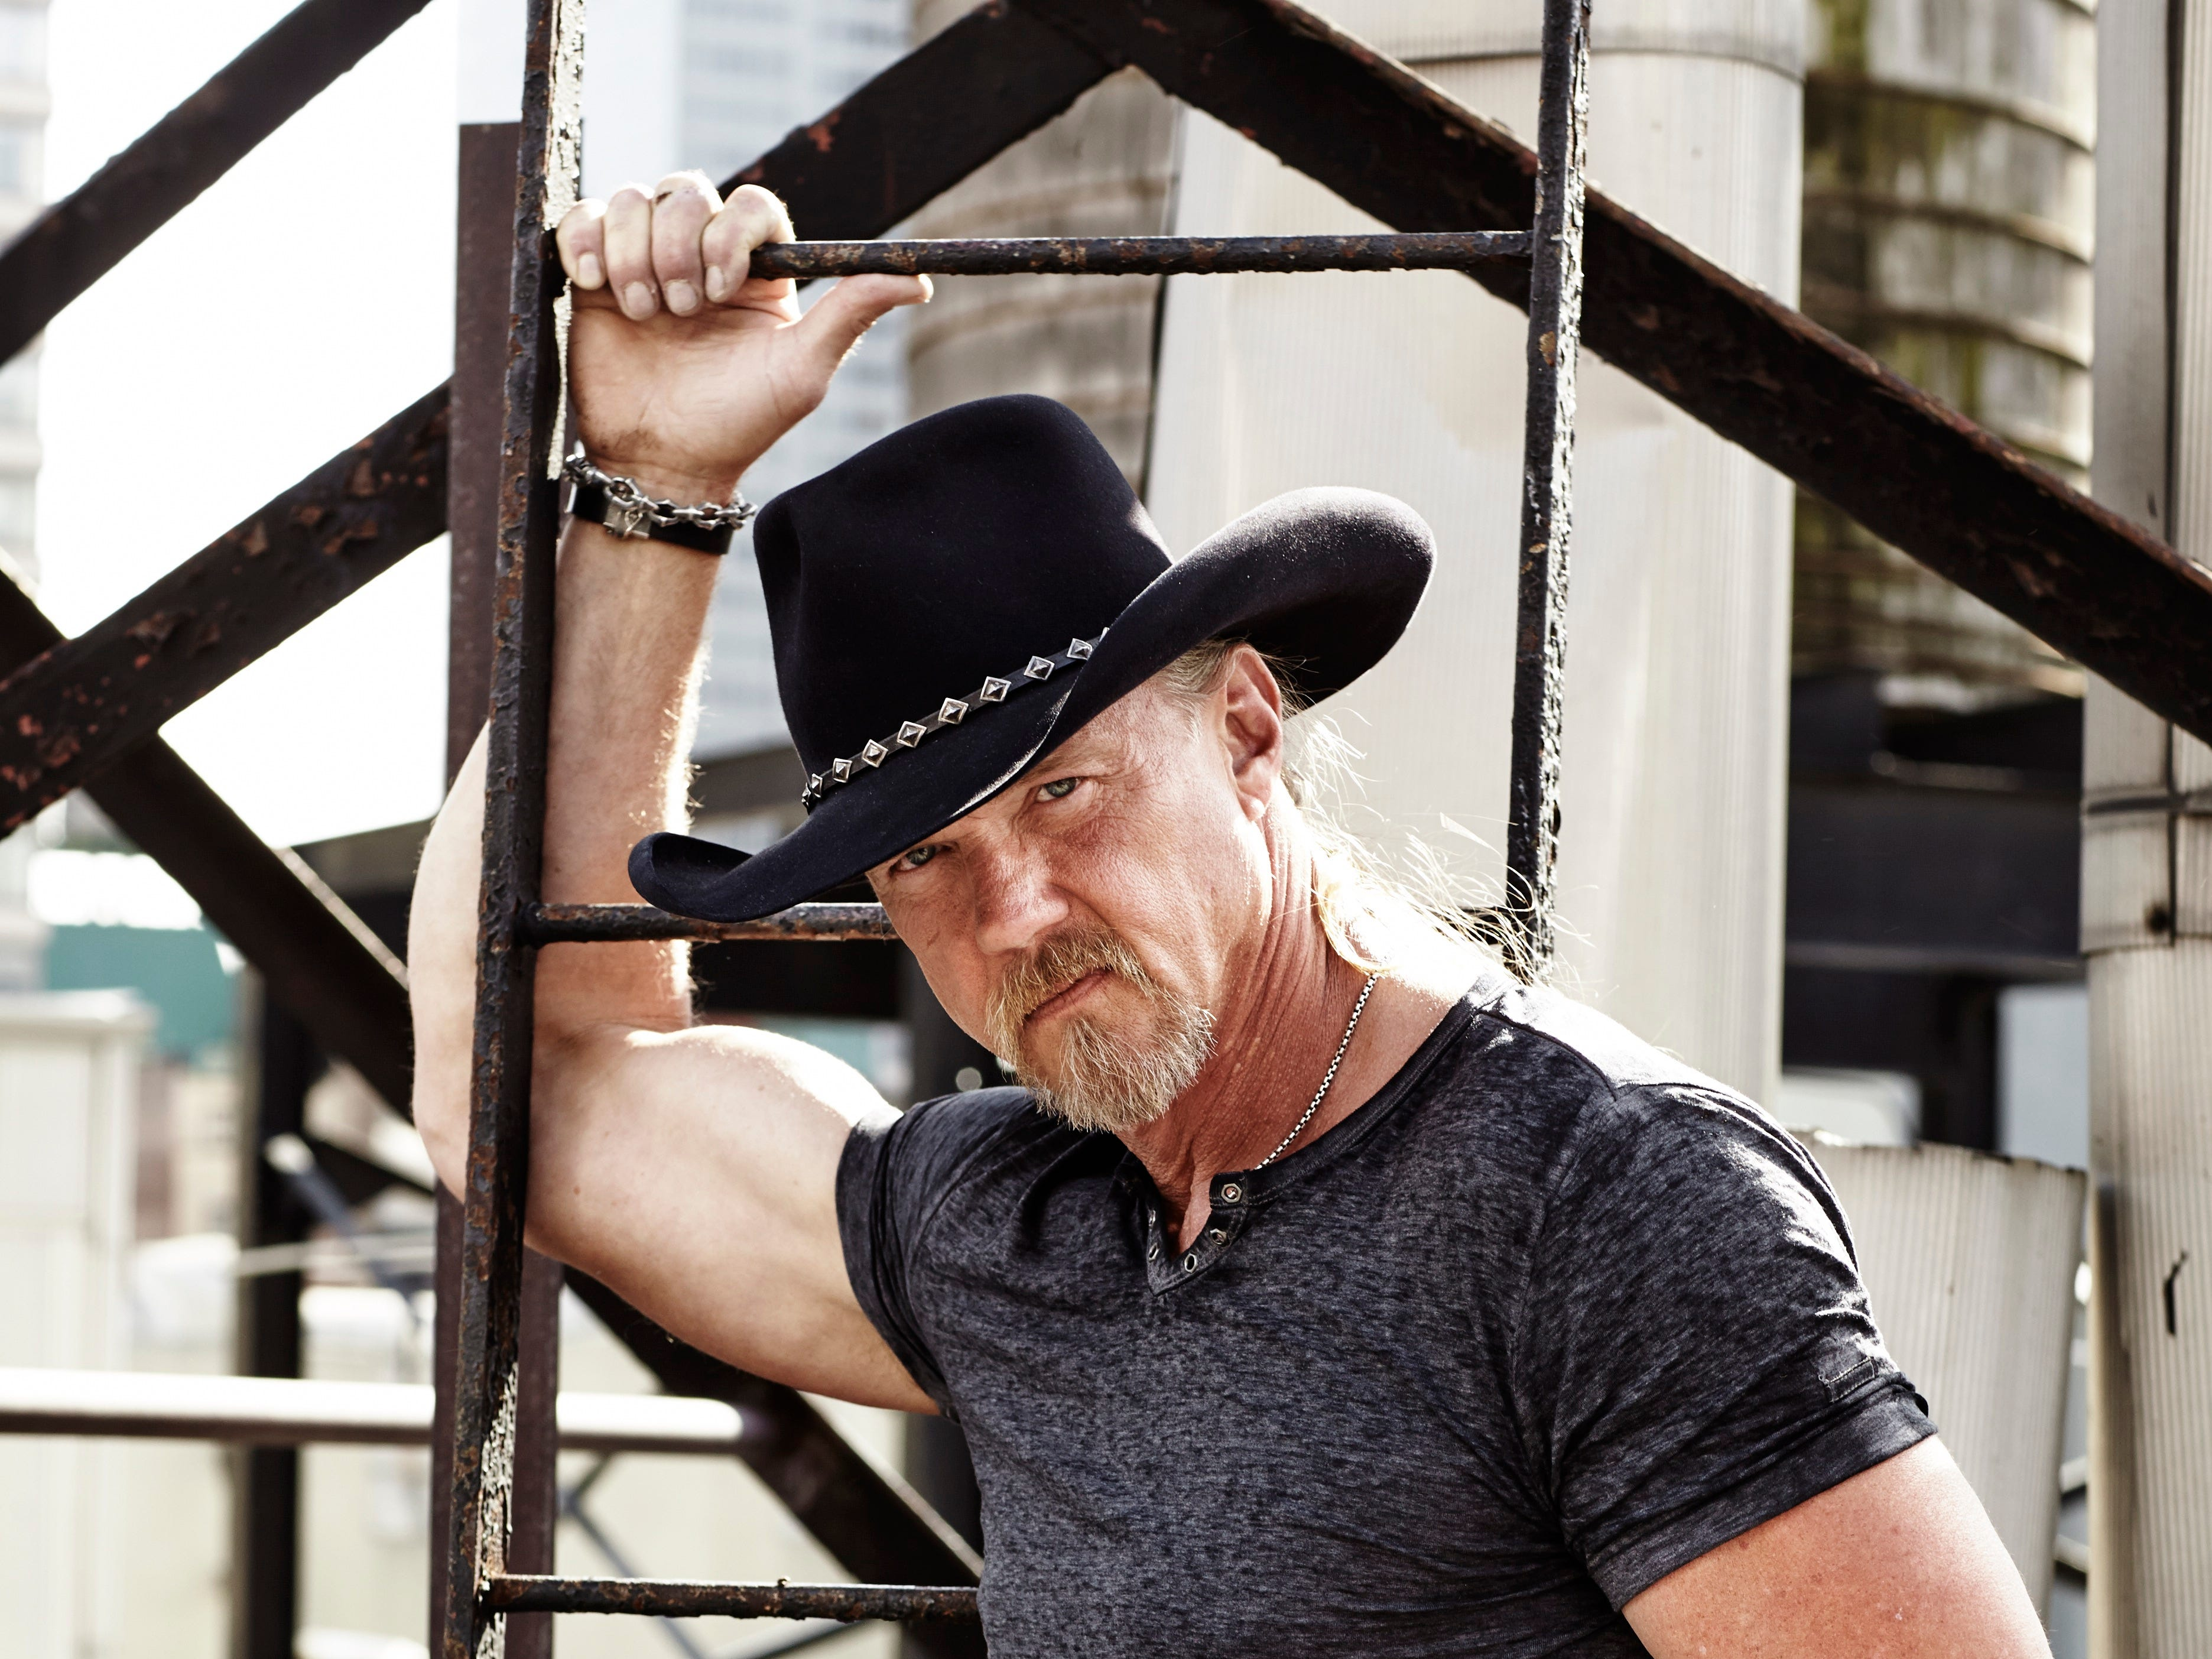 Country music star Trace Adkins will perform at Wells Fargo Arena on March 14.